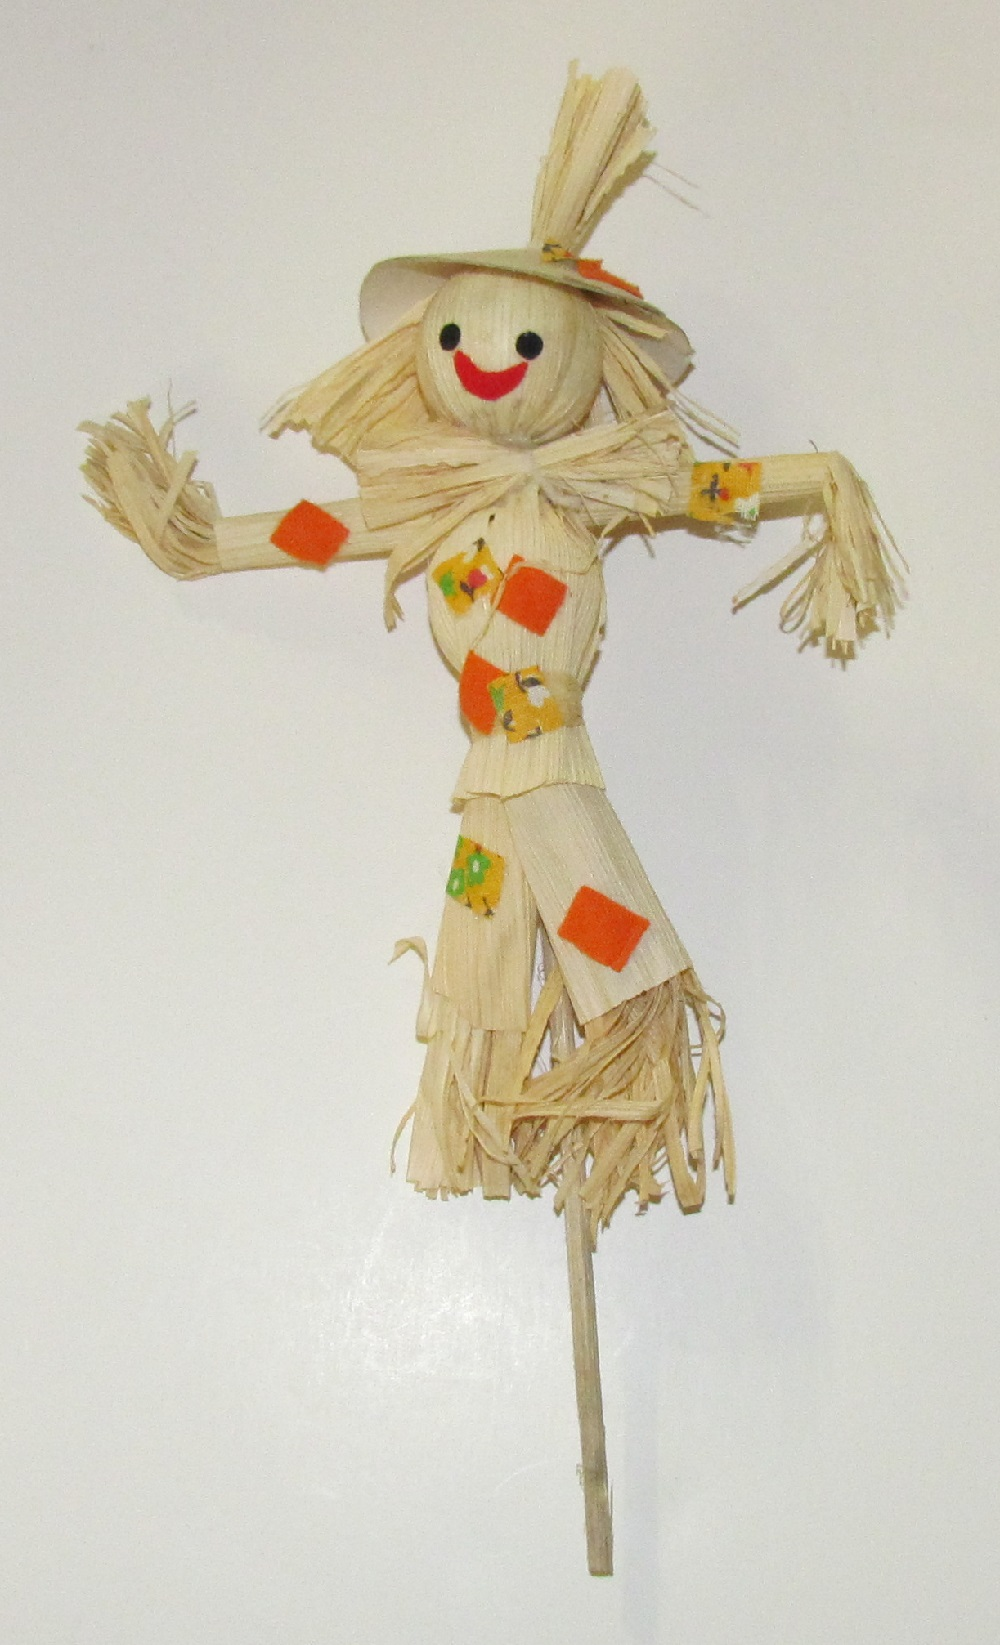 Corn Husk & Straw Scarecrow - 8 inches - 1 piece